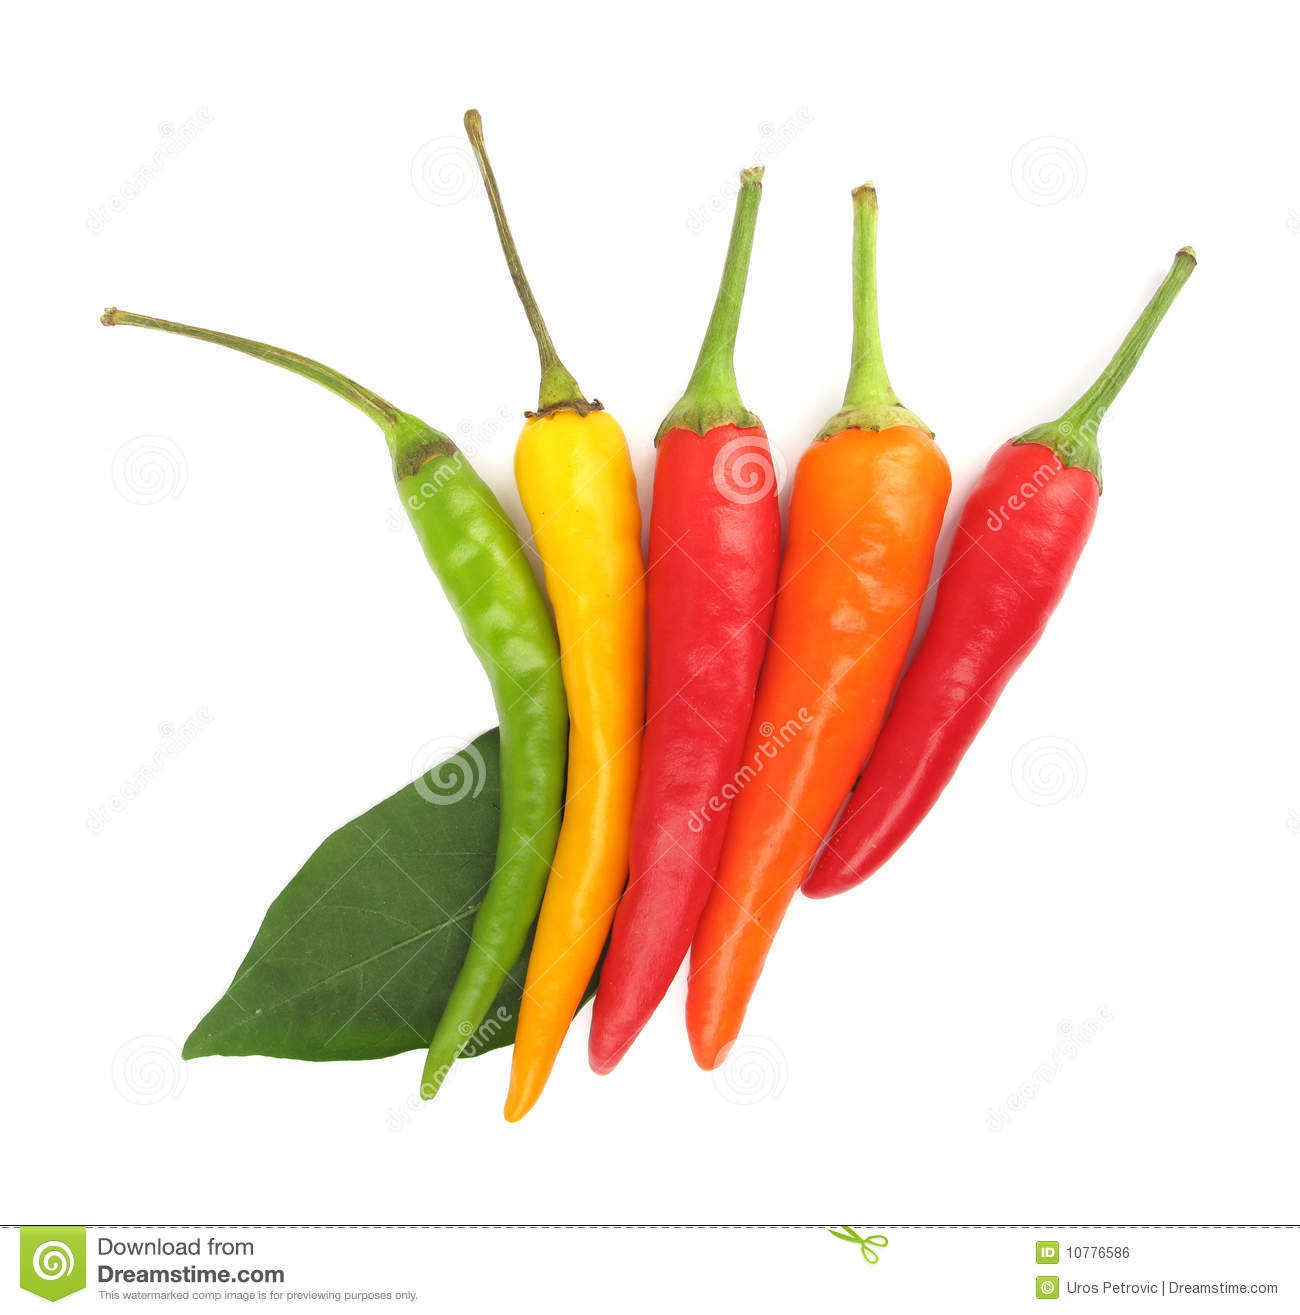 Chili peppers paprika